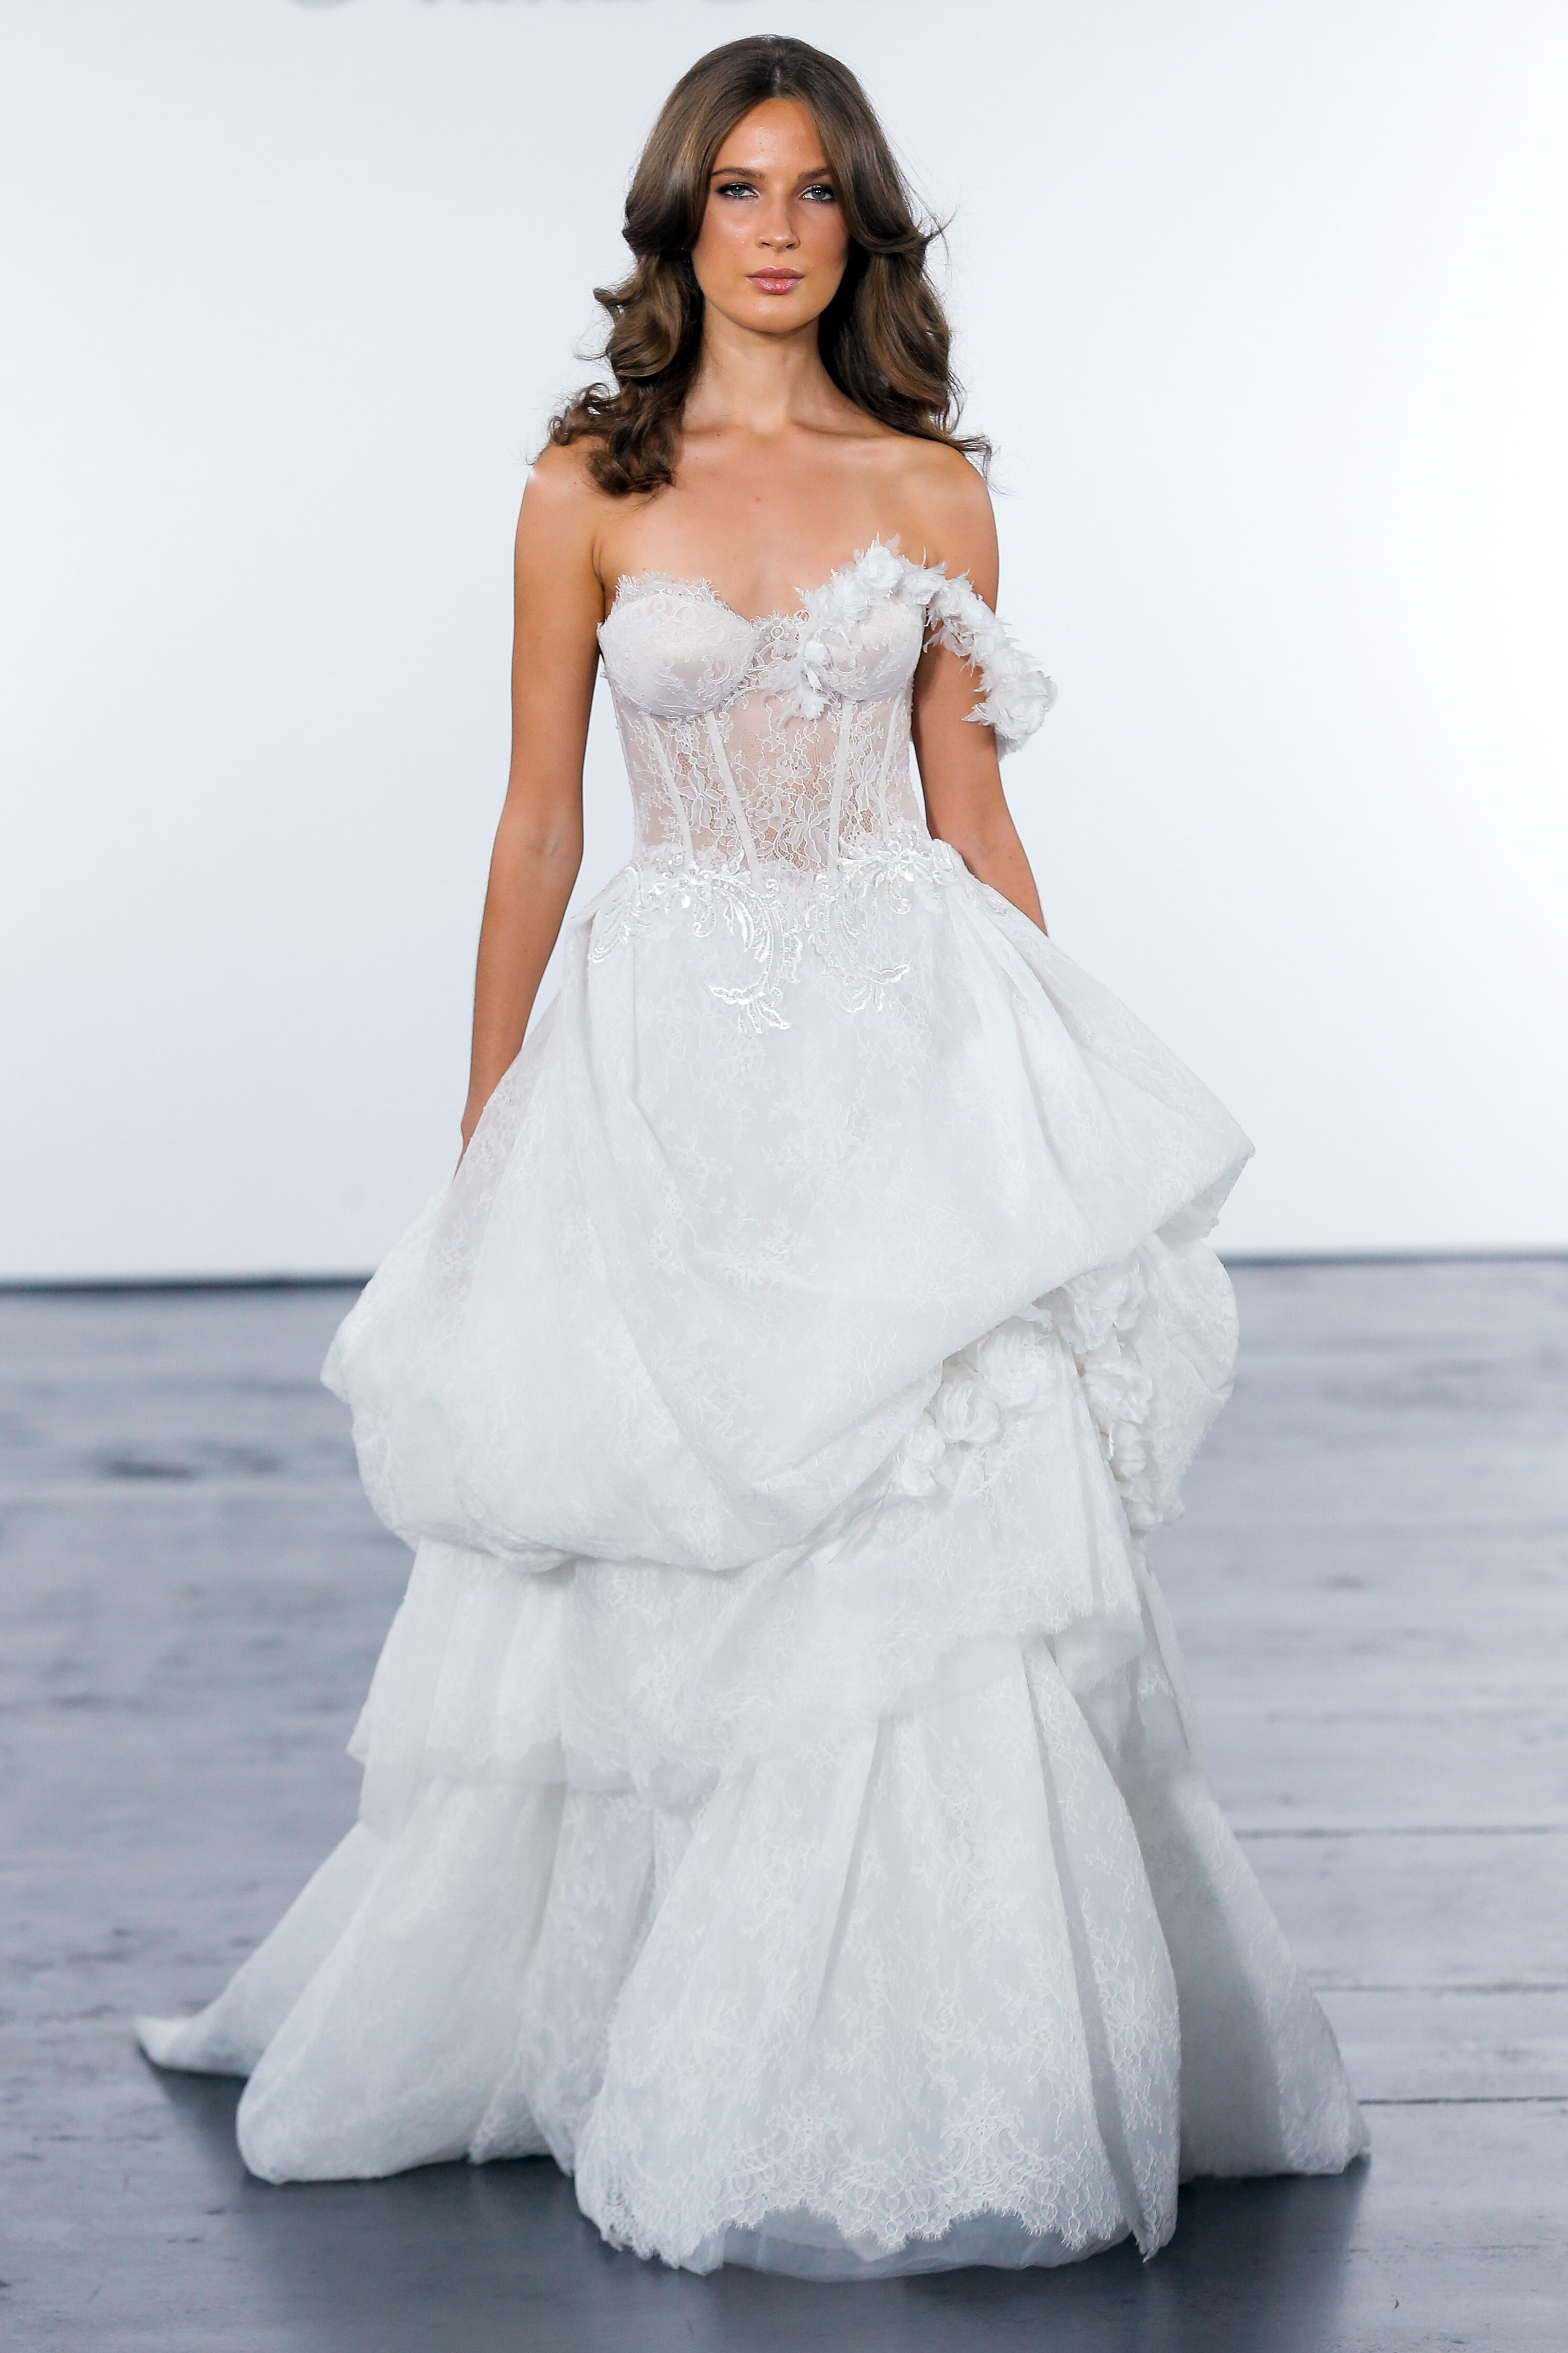 pnina tornai fall 2018 one strap corsetted wedding dress